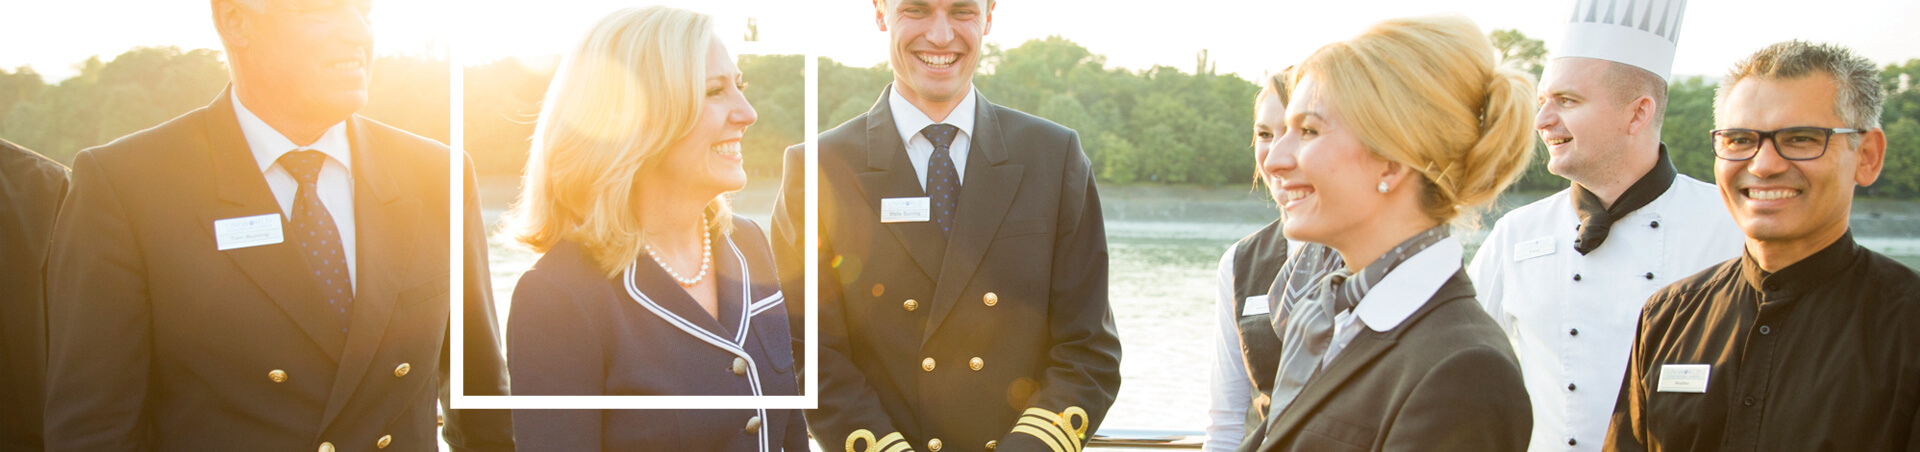 Hotel Manager on River Cruise Ship